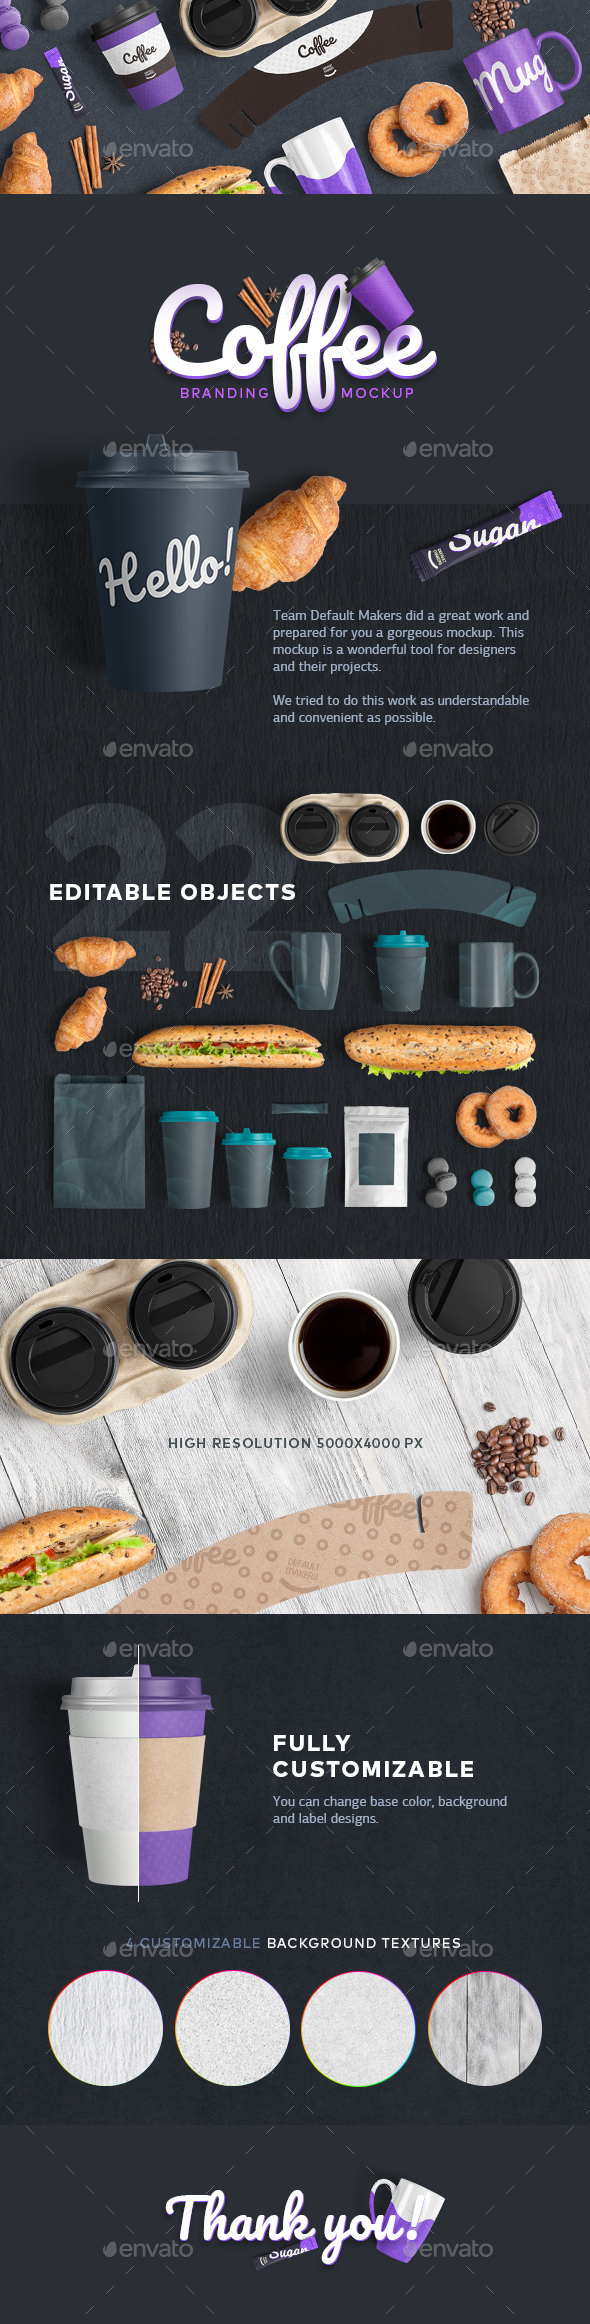 GraphicRiver Coffee Branding Mockup 20658433